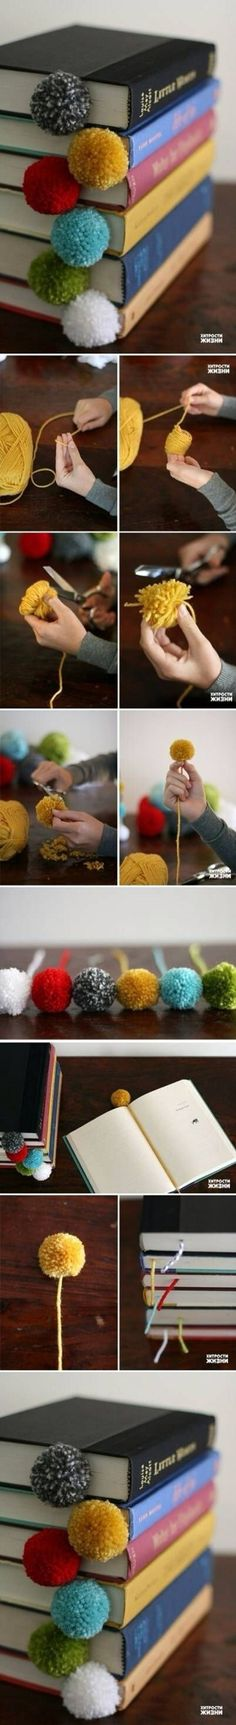 Pom pom bookmarks. I would make the string thicker using macrame/friendship bracelet knots